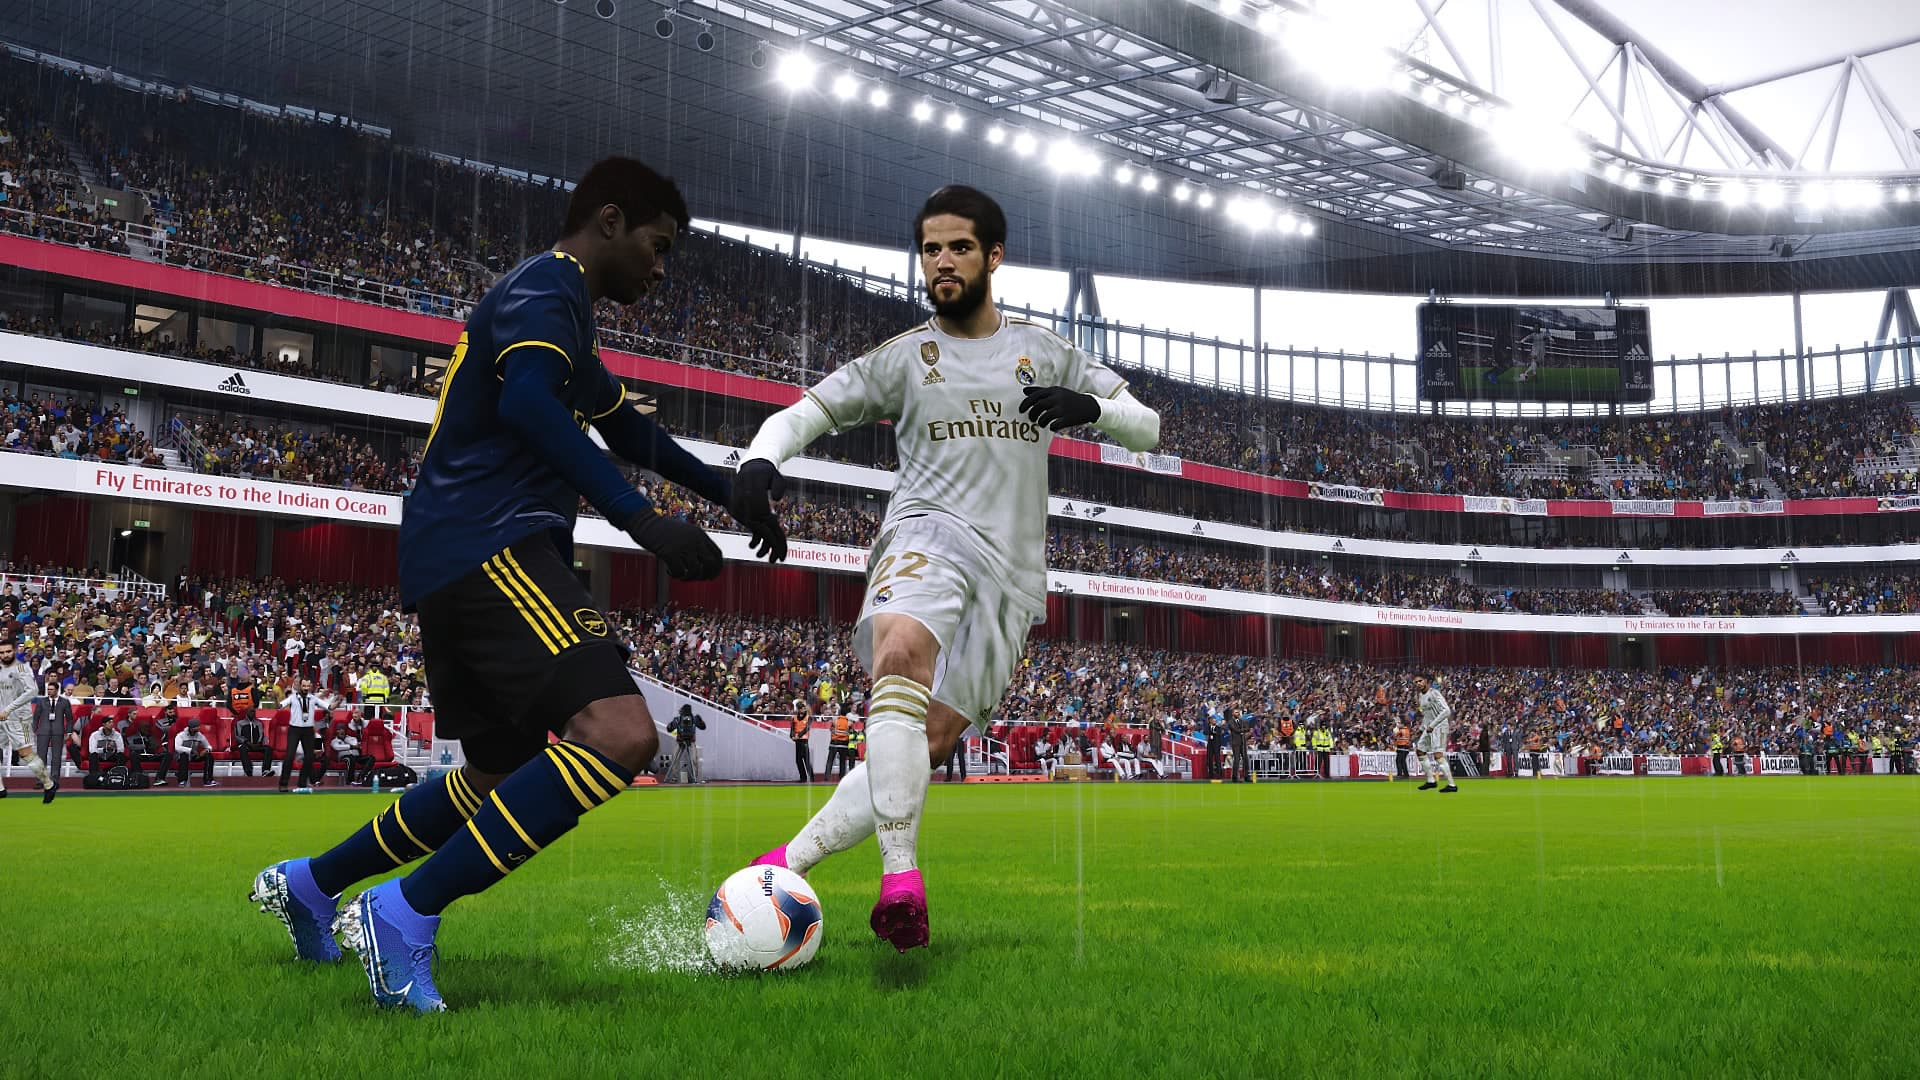 PES 2020 Finesse Dribbling Isco - Análisis eFootball PES 2020